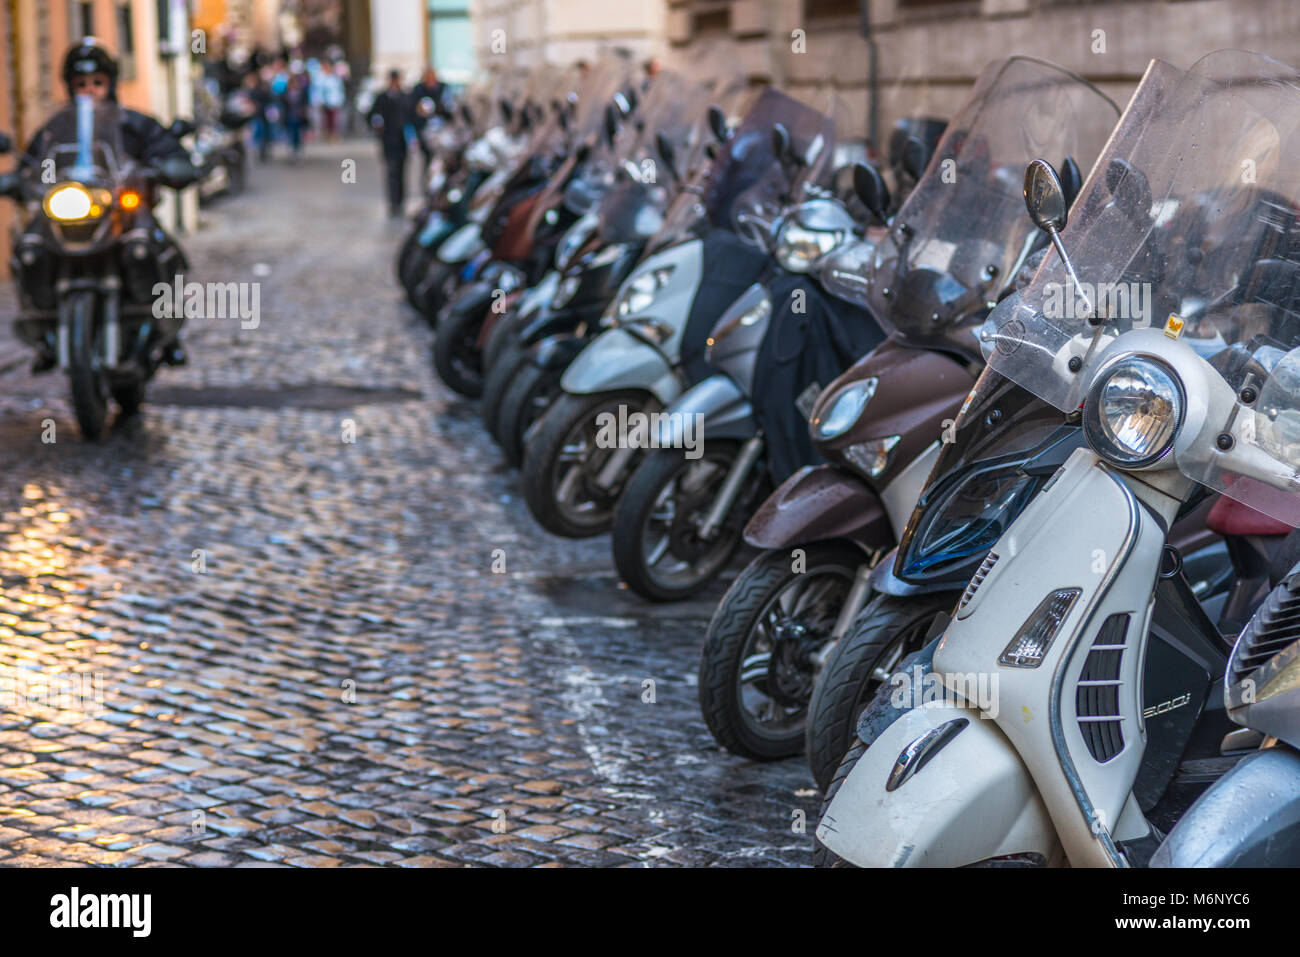 vespas-and-other-motorcycles-on-rome-cob